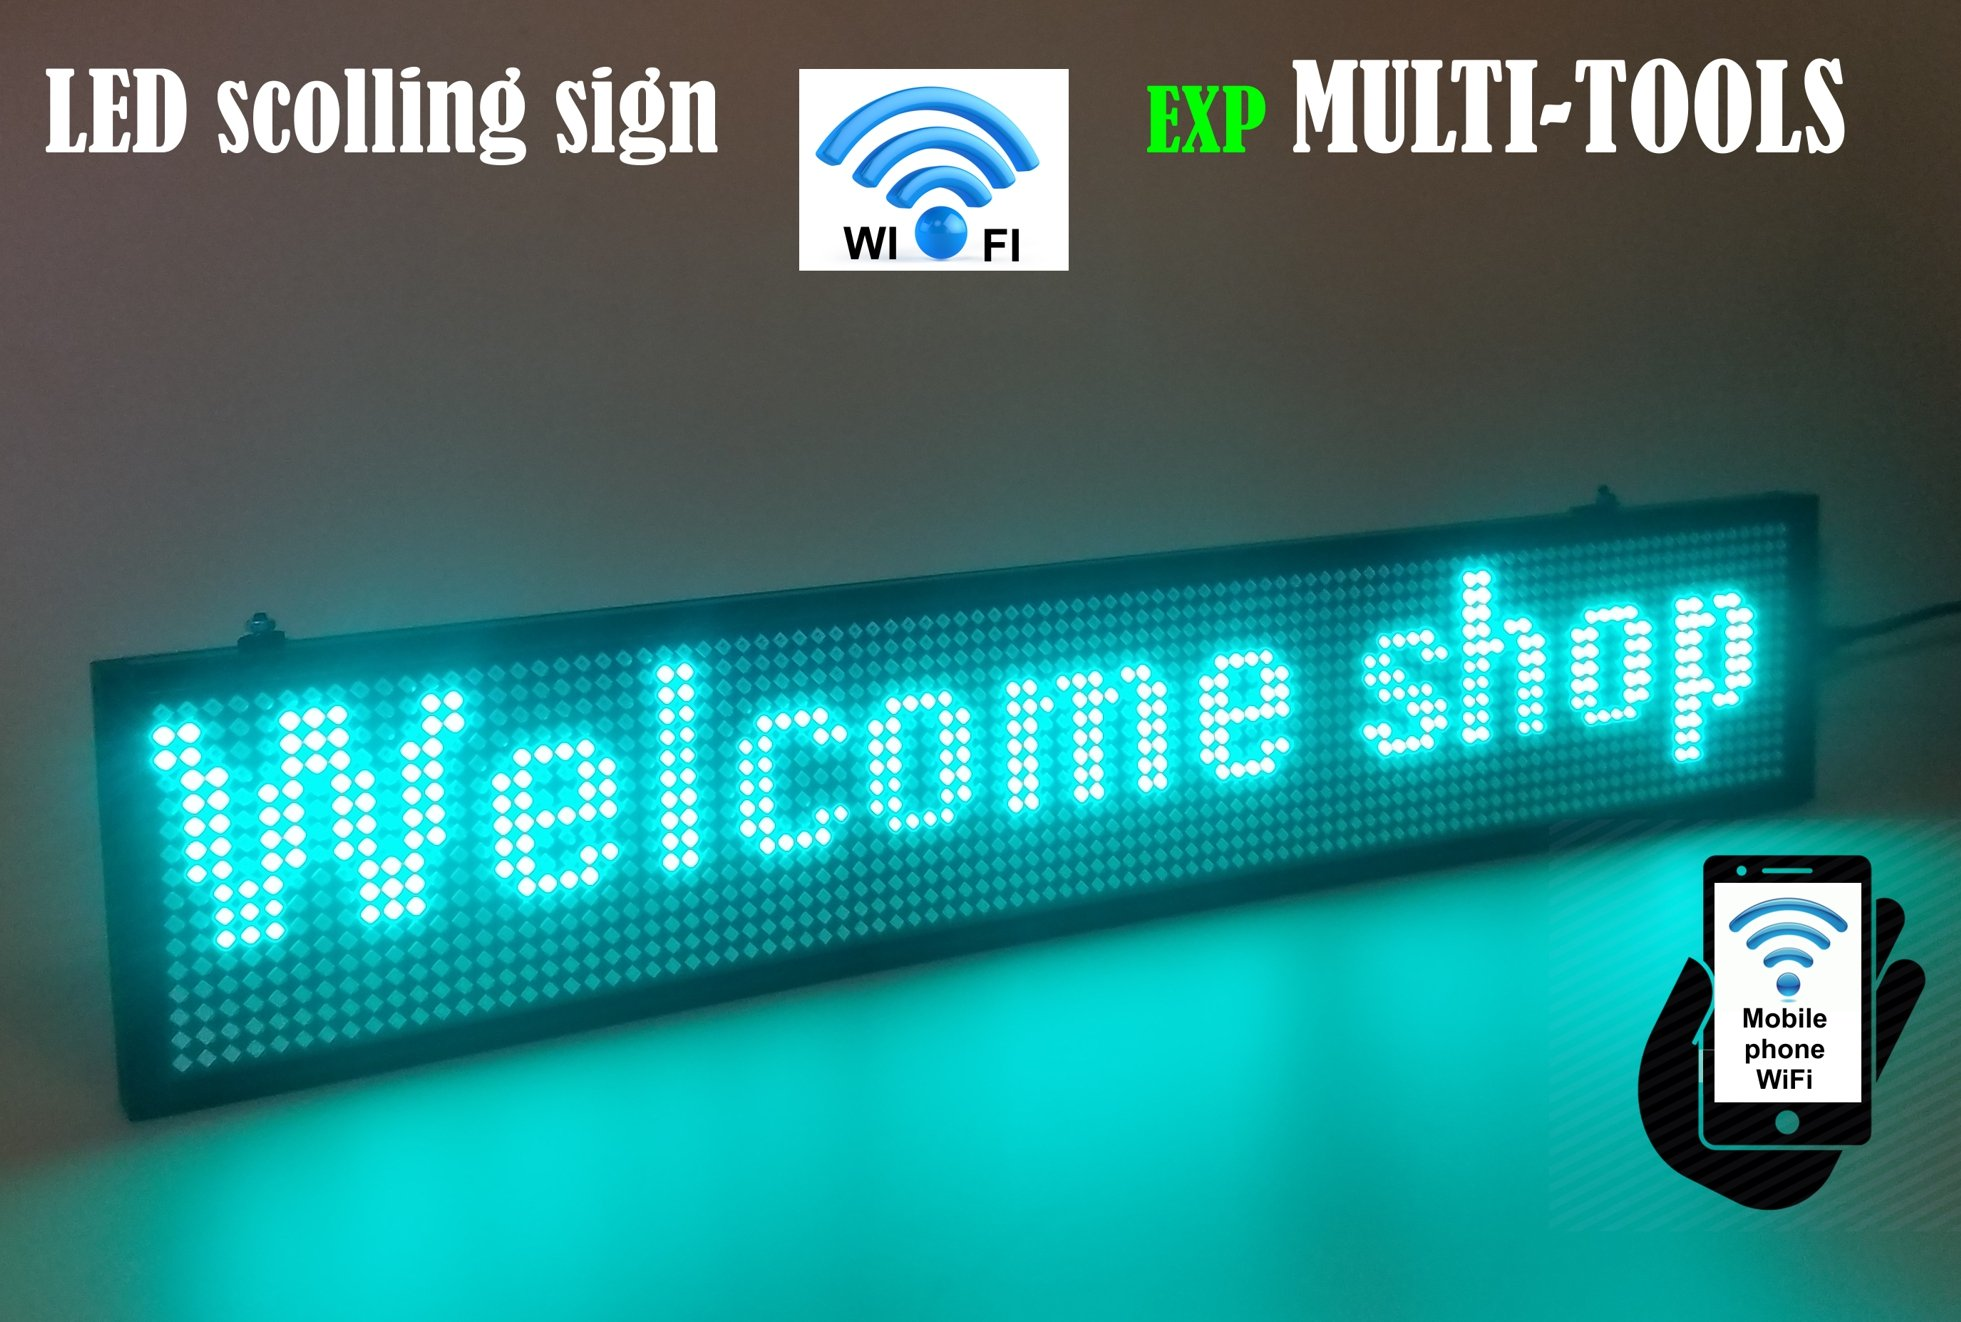 LED Display Green Color with WiFi Connection, LED Scrolling Message Sign, Bright and in New Light auminum Housing